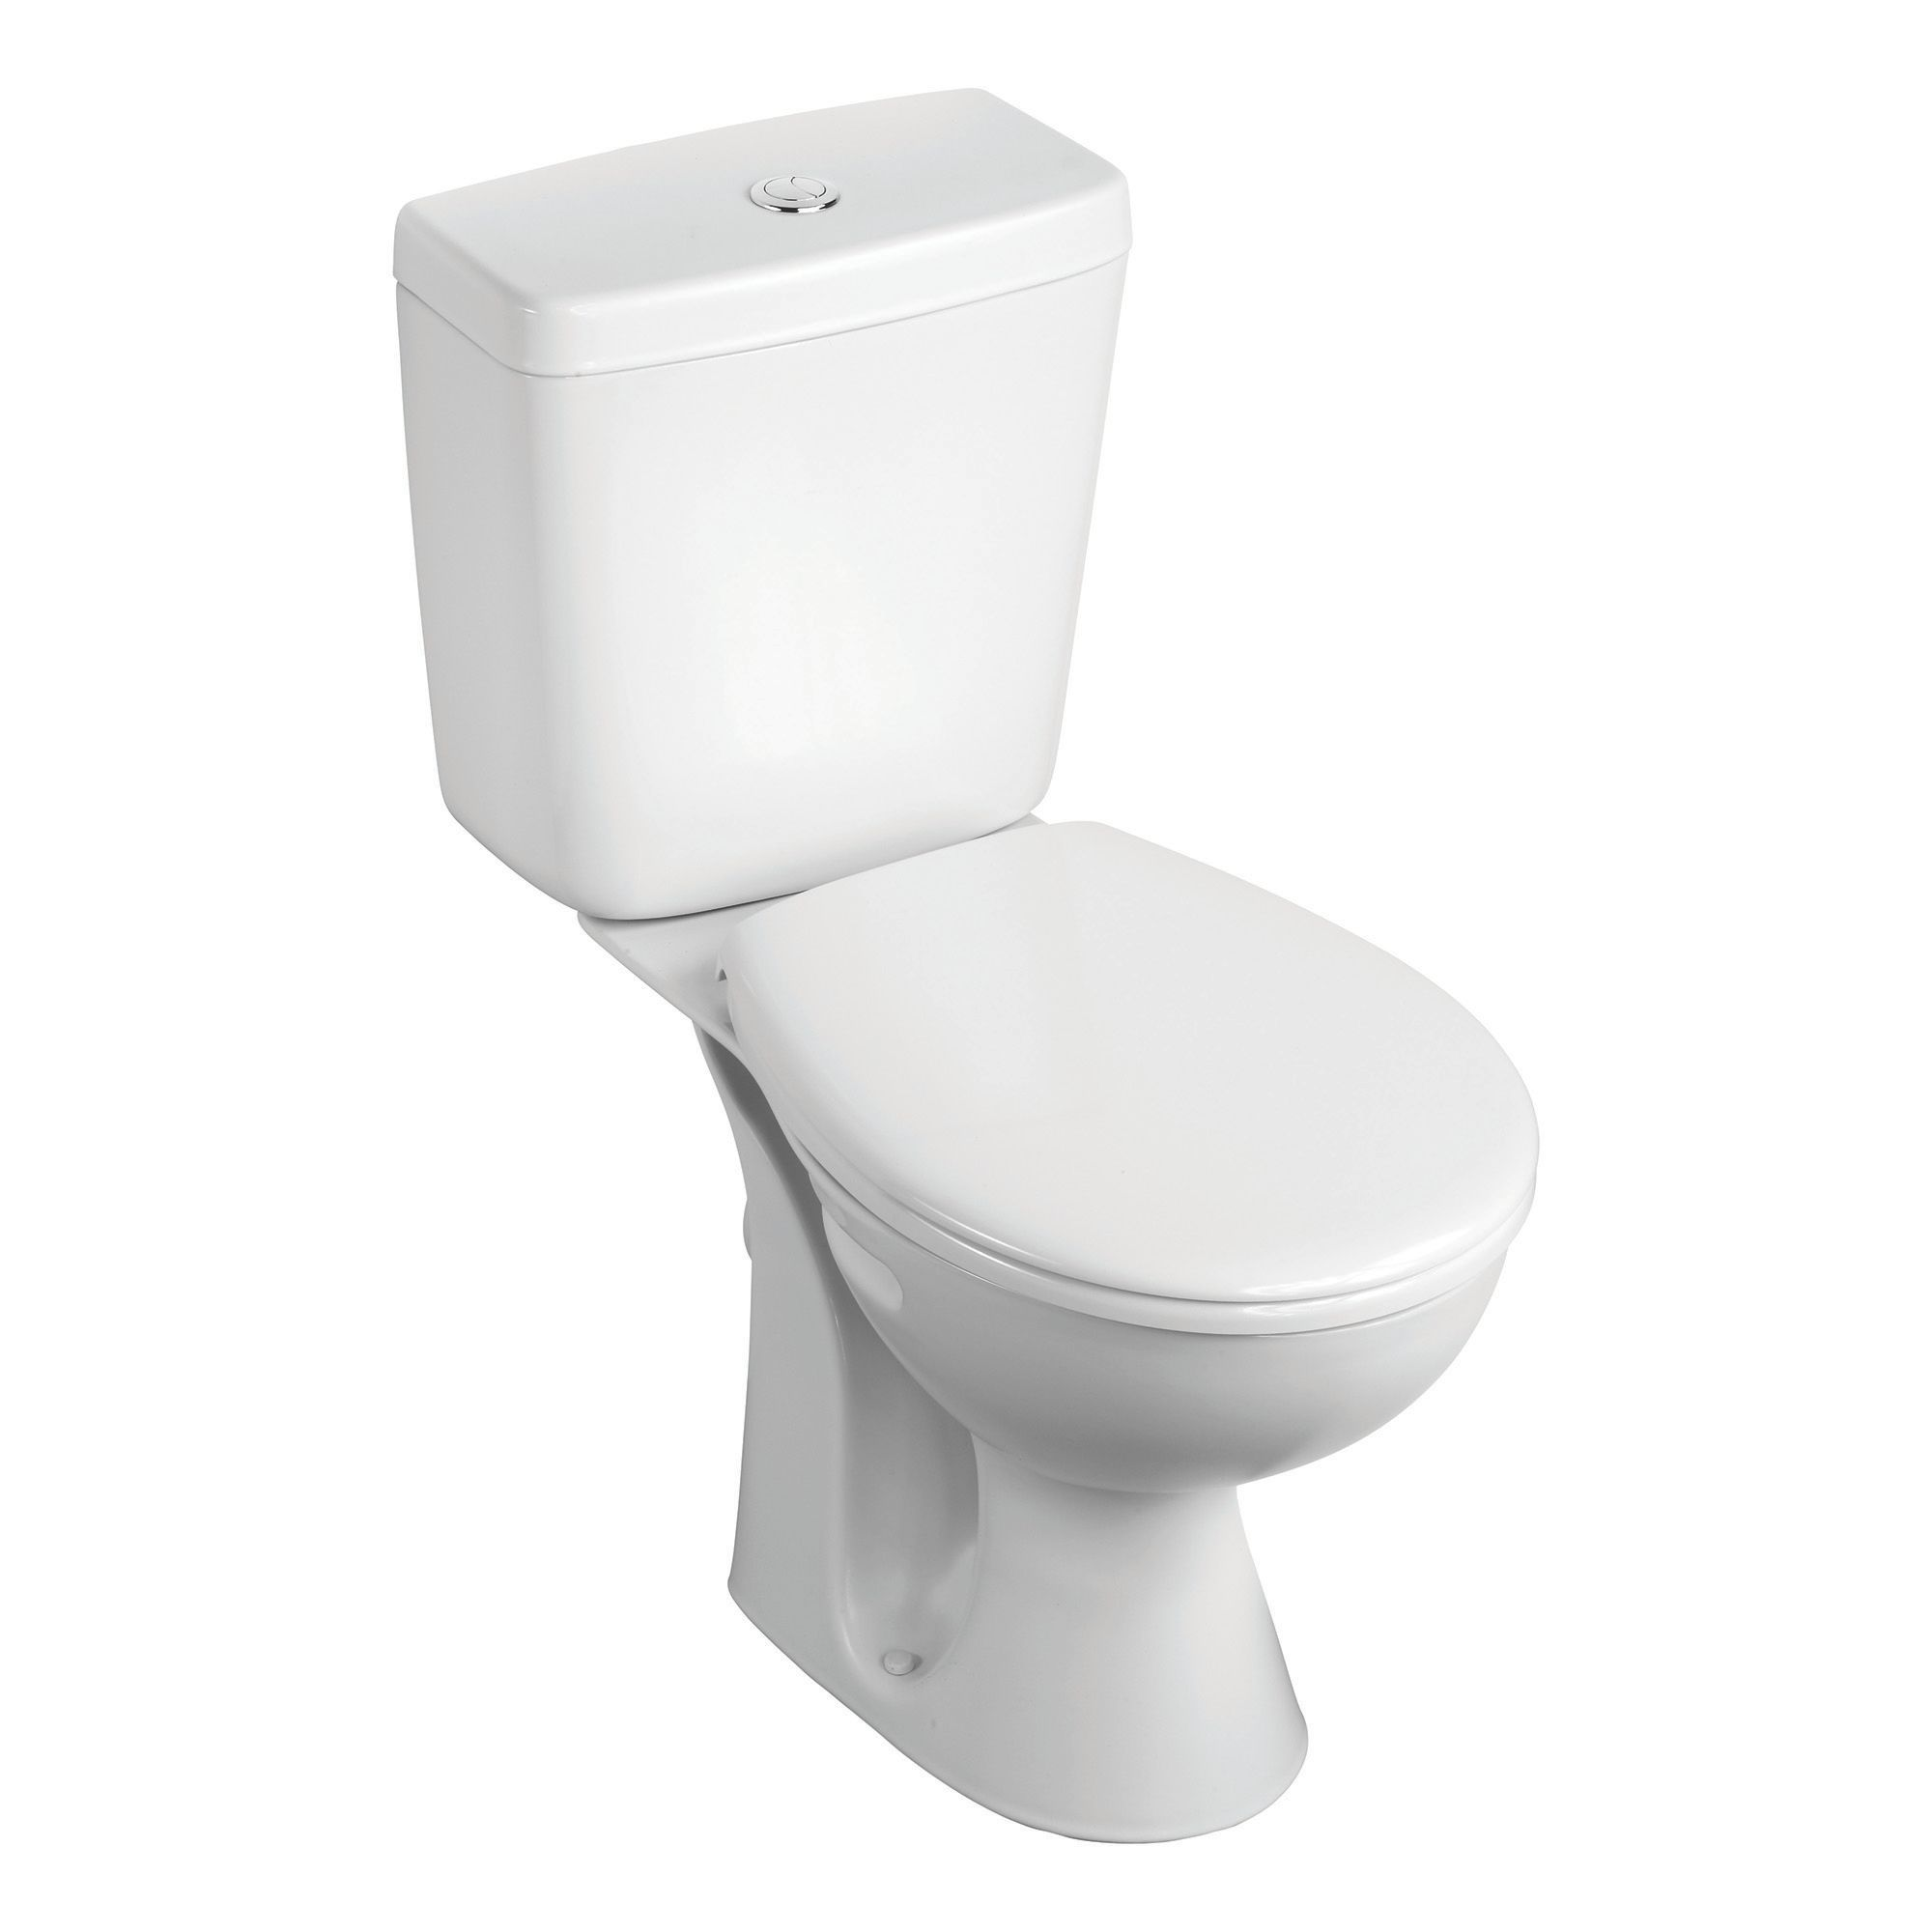 Armitage Shanks Sandringham 21 Close Coupled Toilet Pack